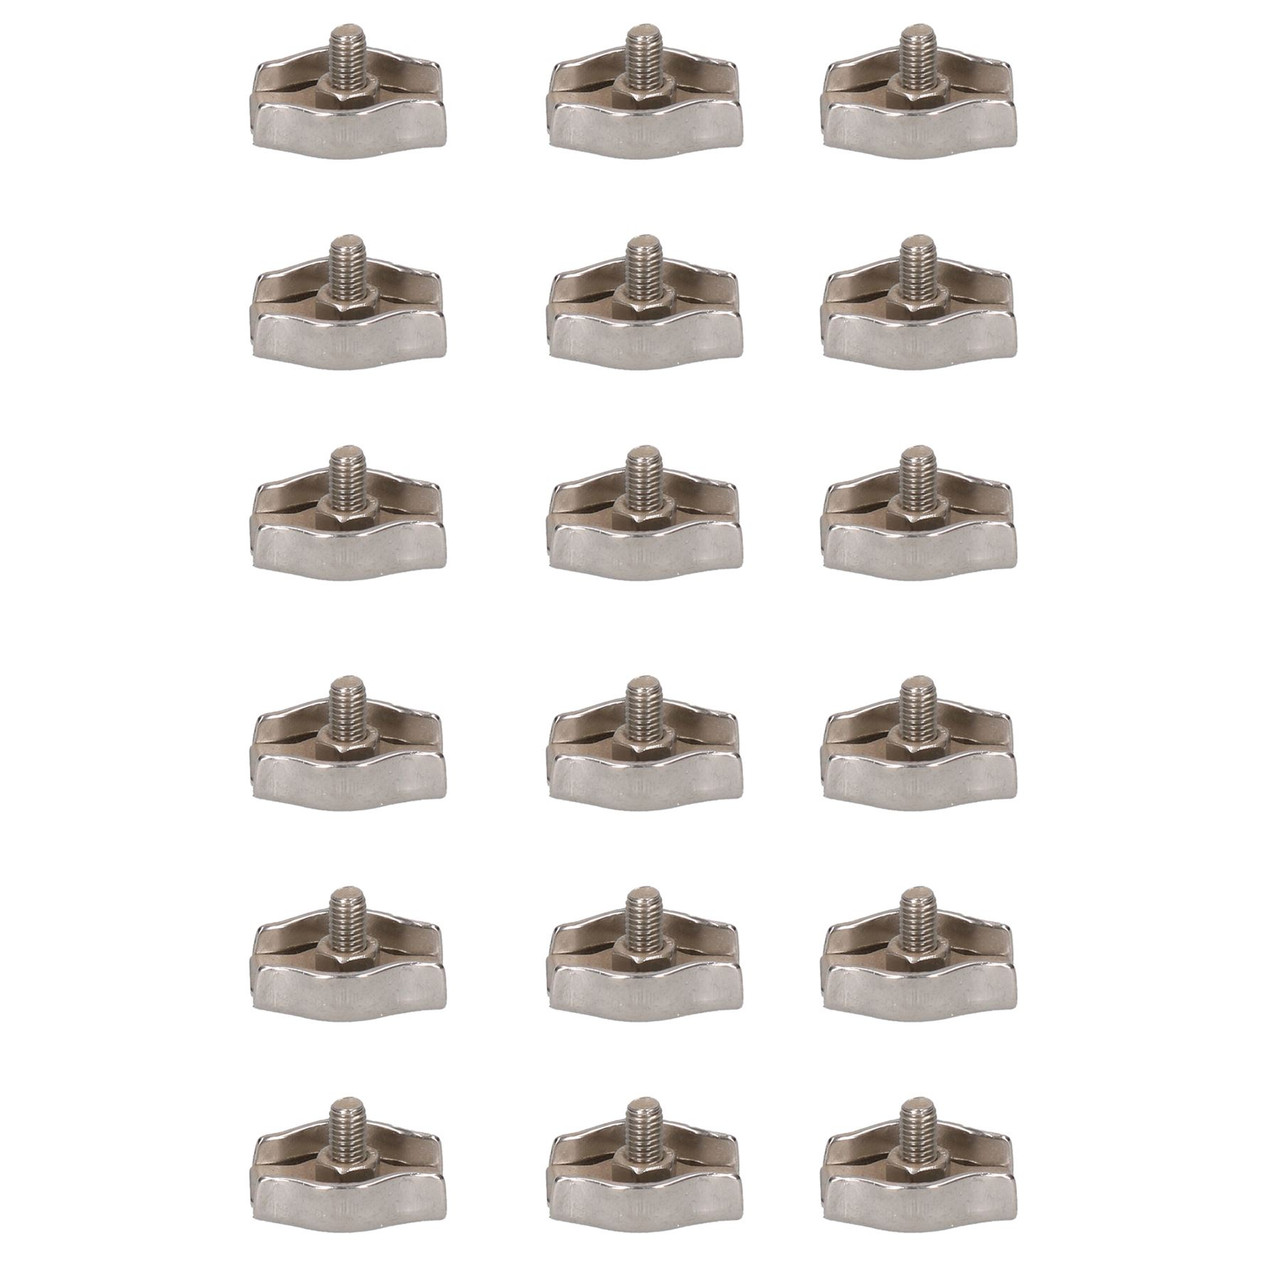 5mm Simplex Wire Rope / Cable Clamp Grips 18 PACK 316 Marine Stainless Steel